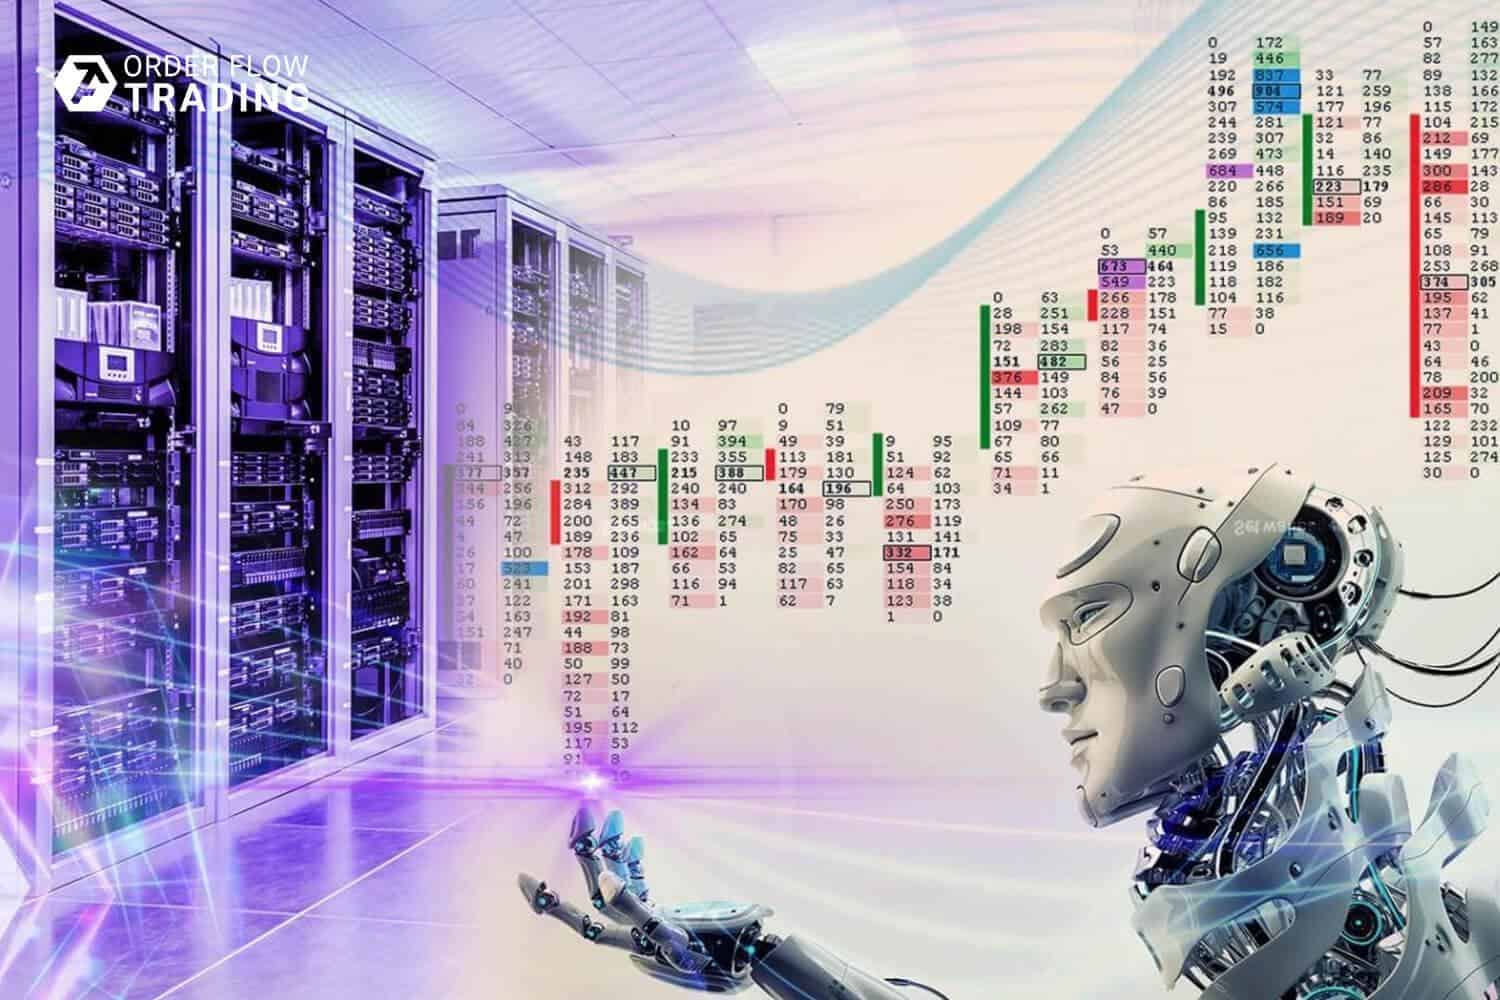 Does high-frequency trading (HFT) increase market liquidity?